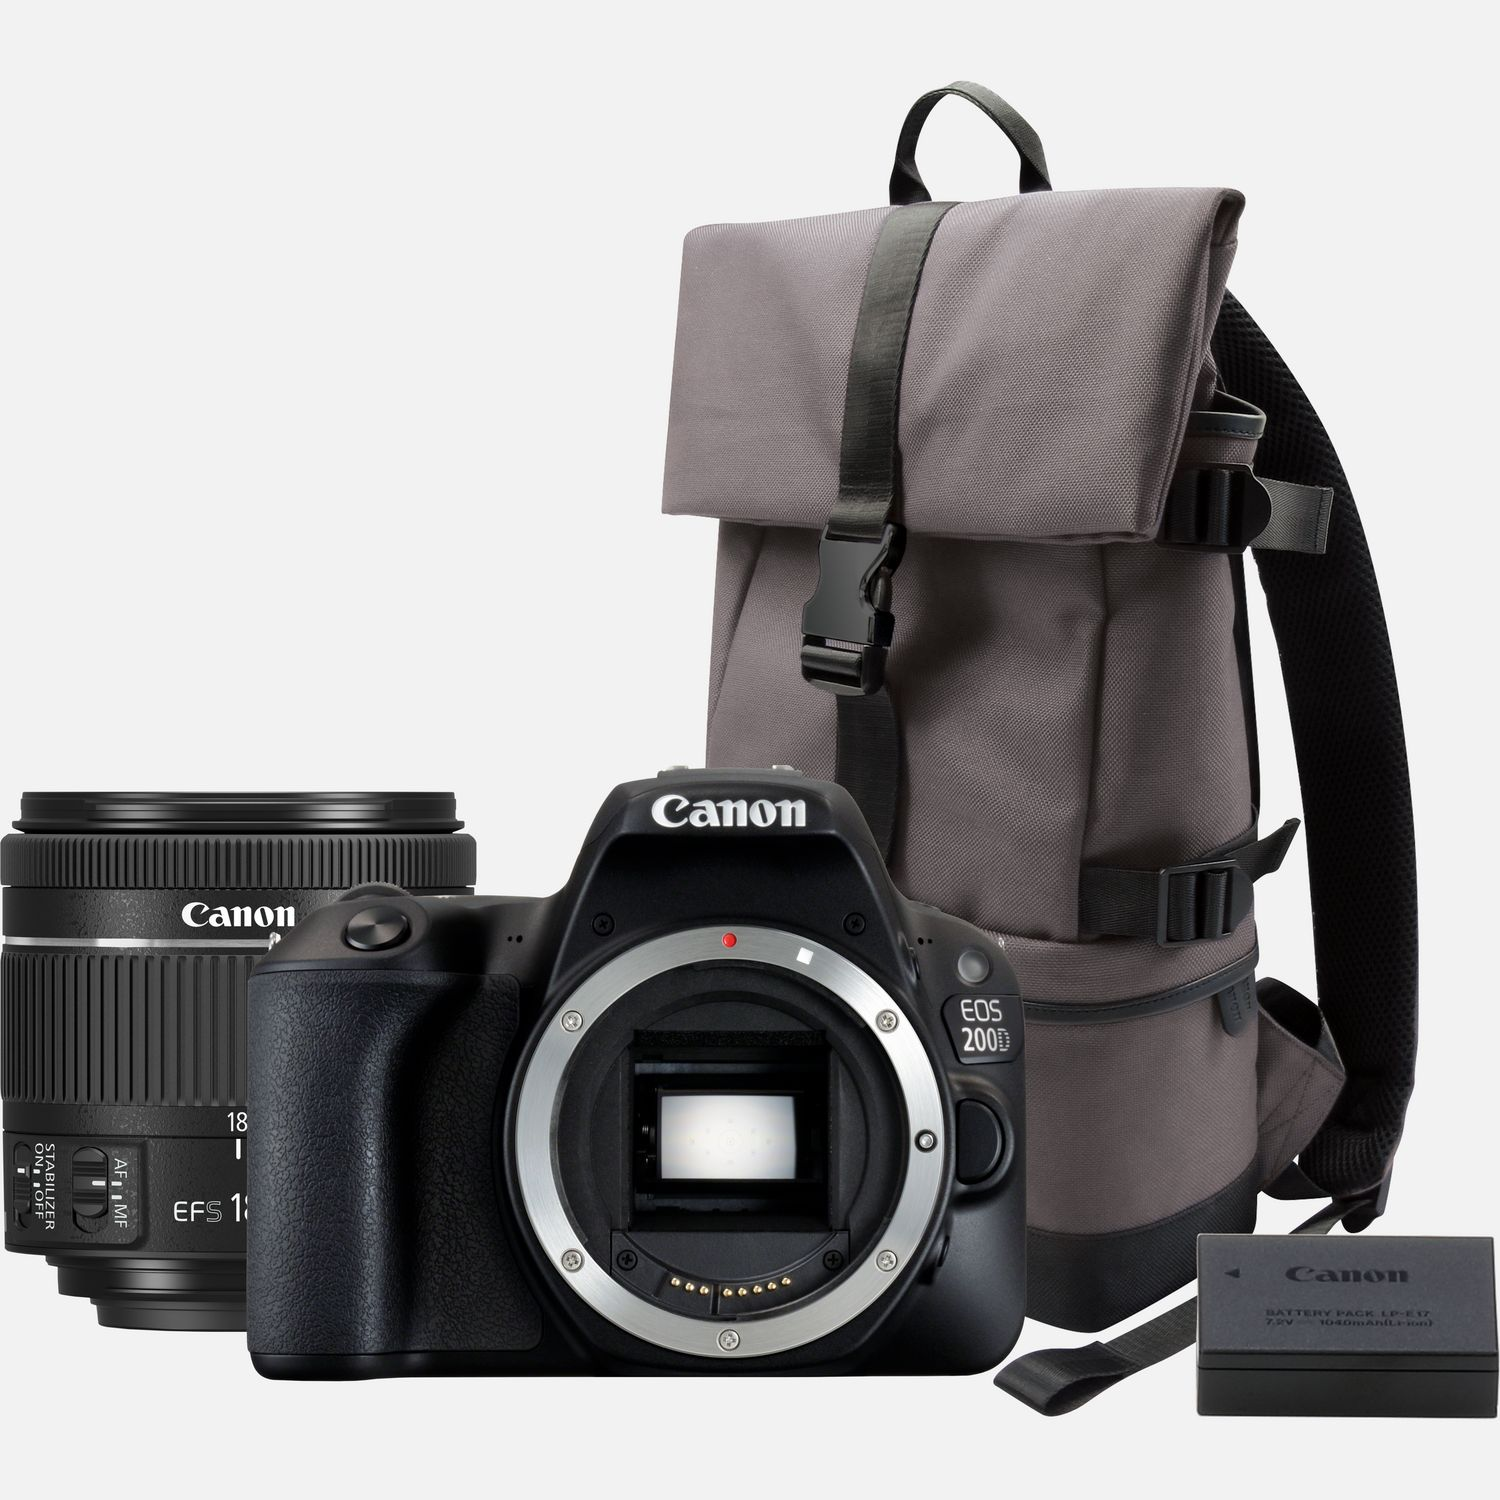 Image of Canon EOS 200D Black + 18-55mm f/4-5.6 IS STM Lens Black + Backpack + Spare Battery